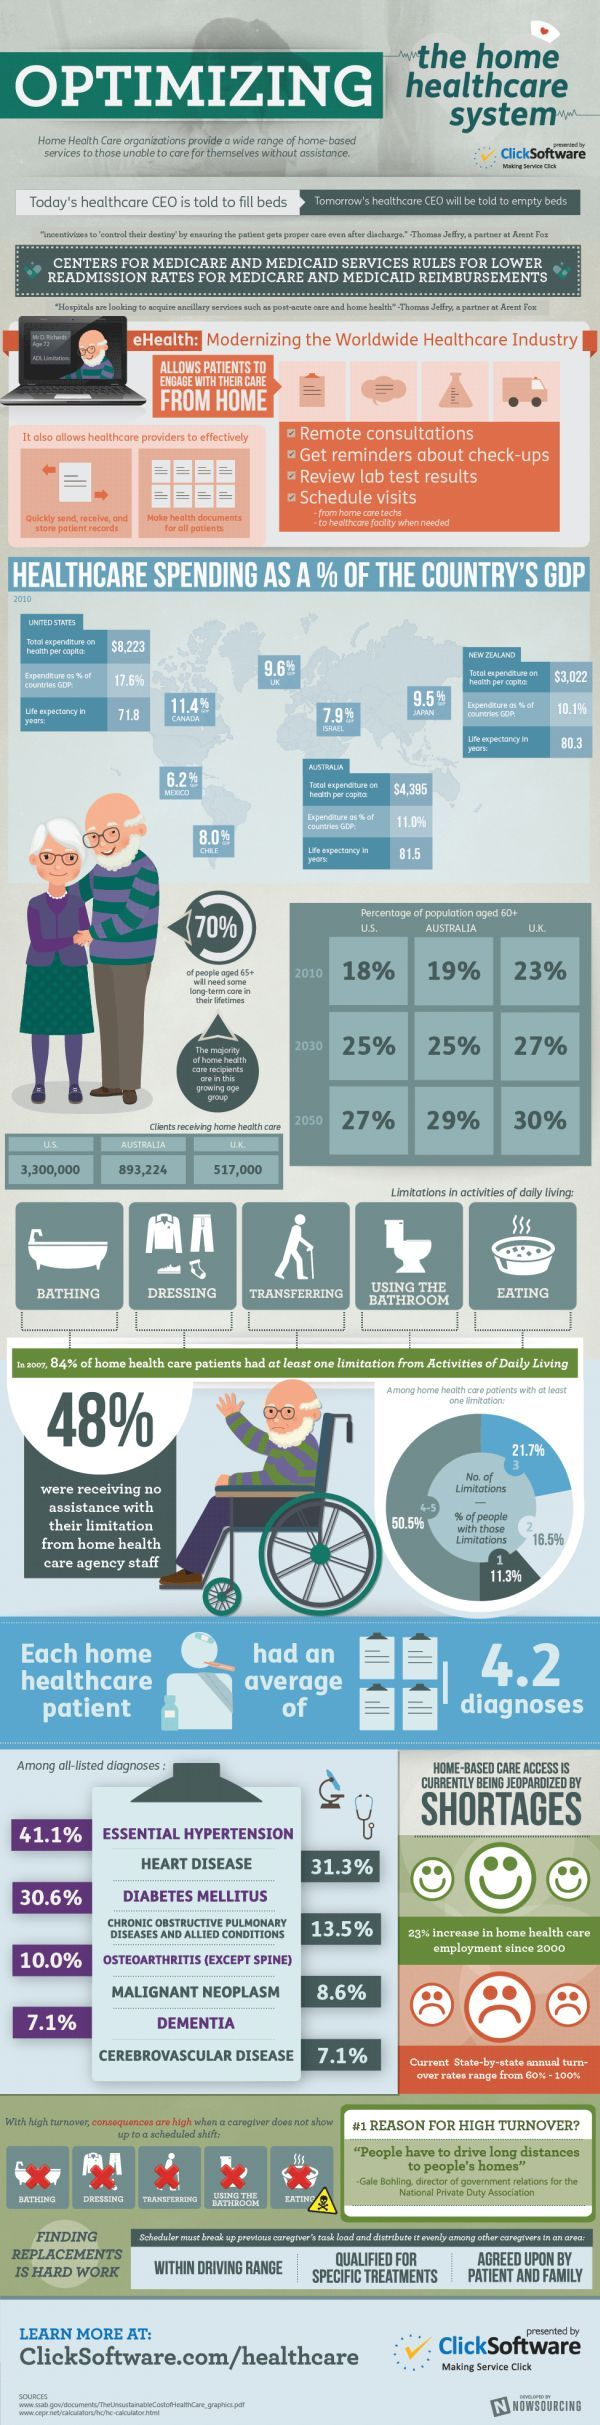 Infographic: See how eHealth aids in home health care